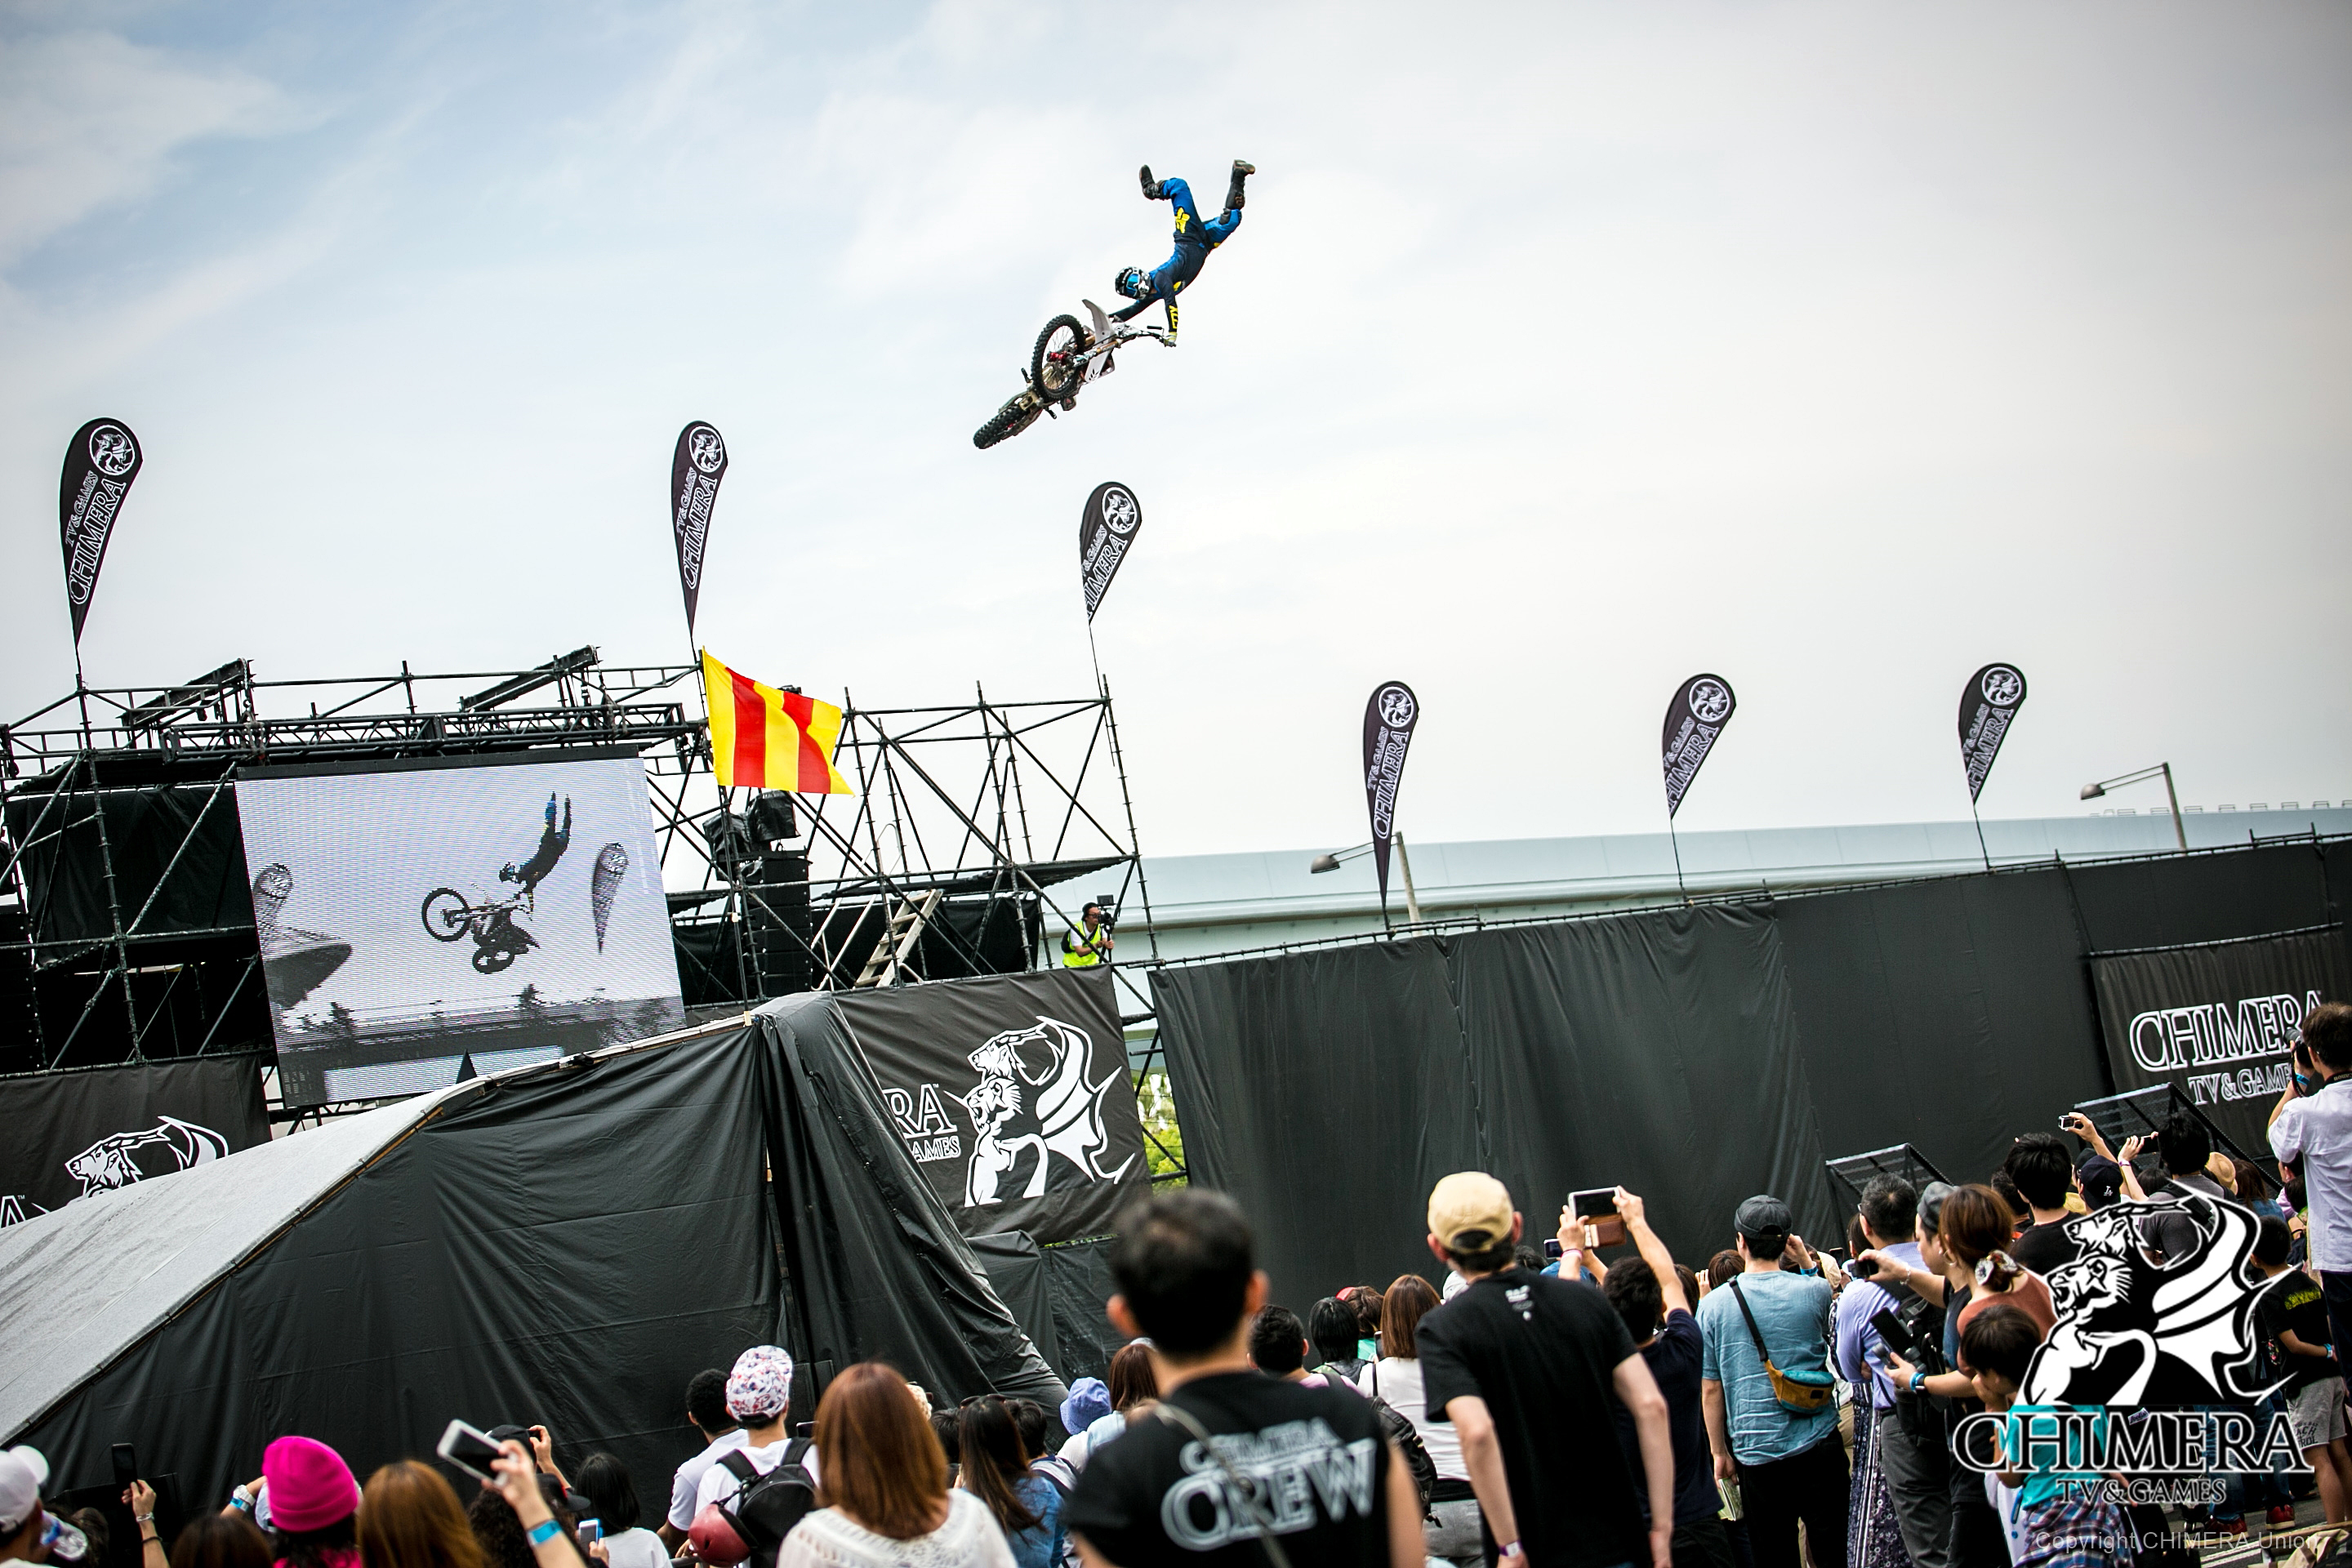 FMX、freestyle motocross